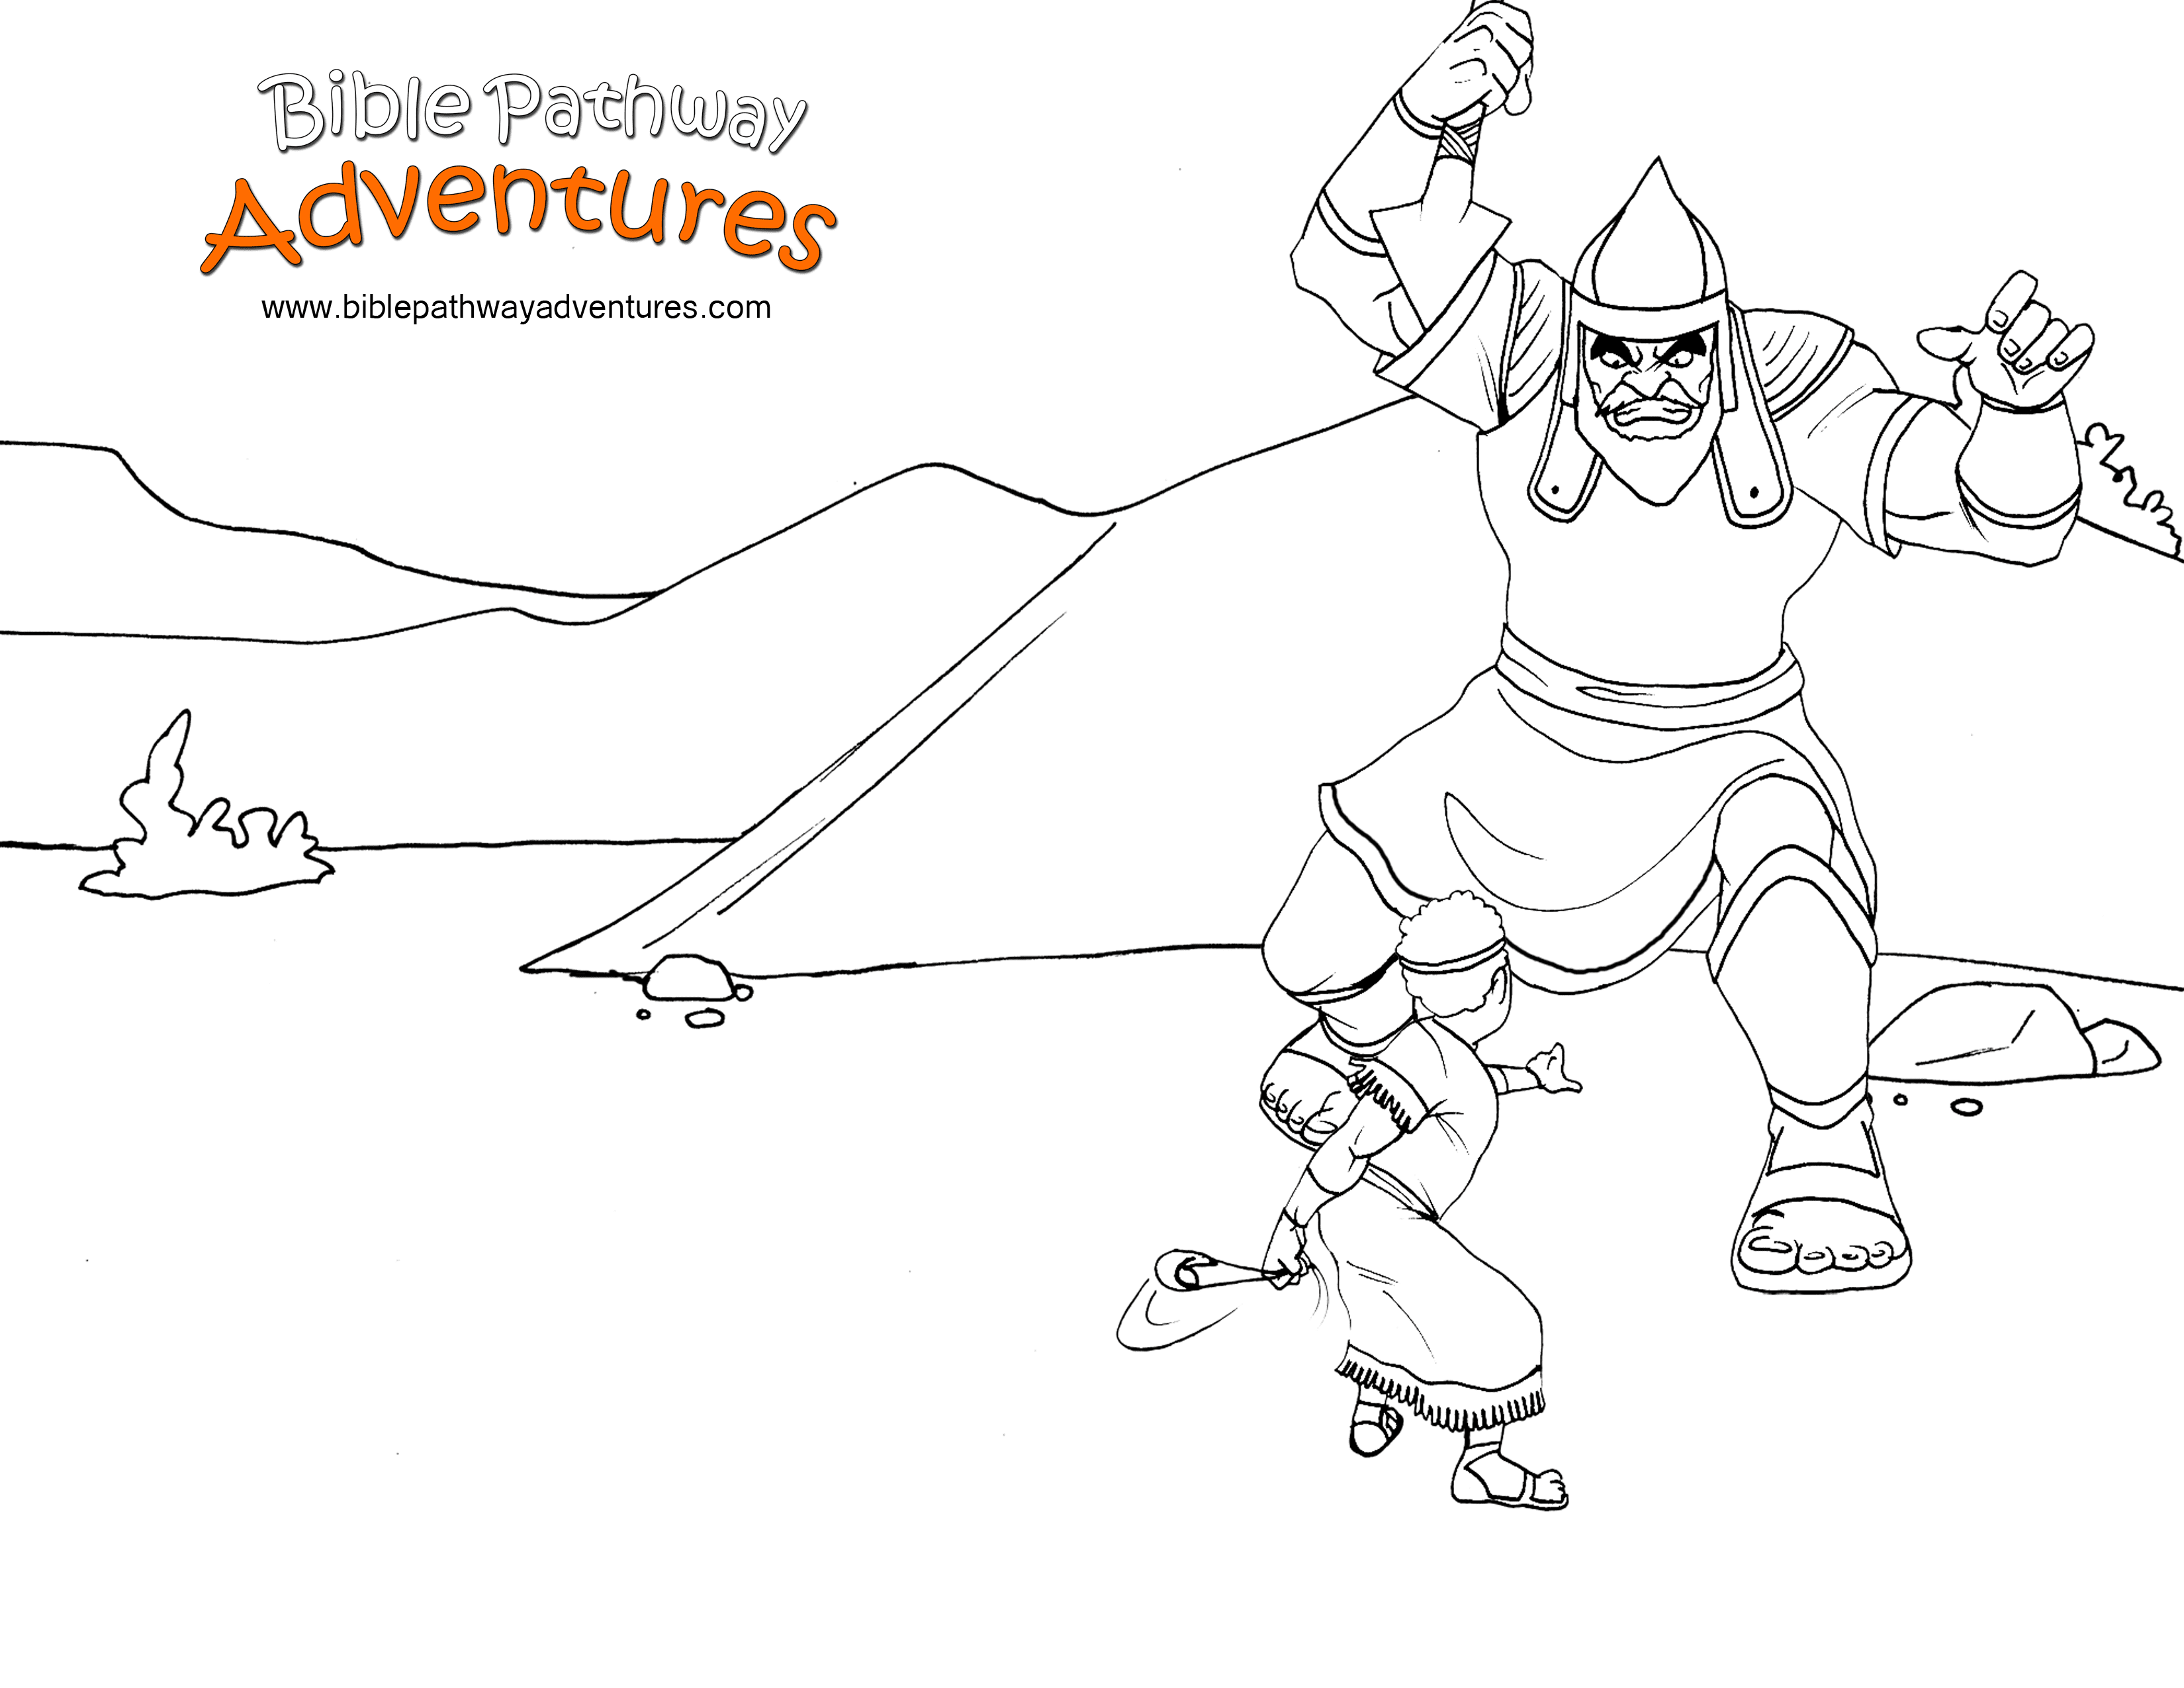 Free Bible Story Coloring Page - David and Goliath